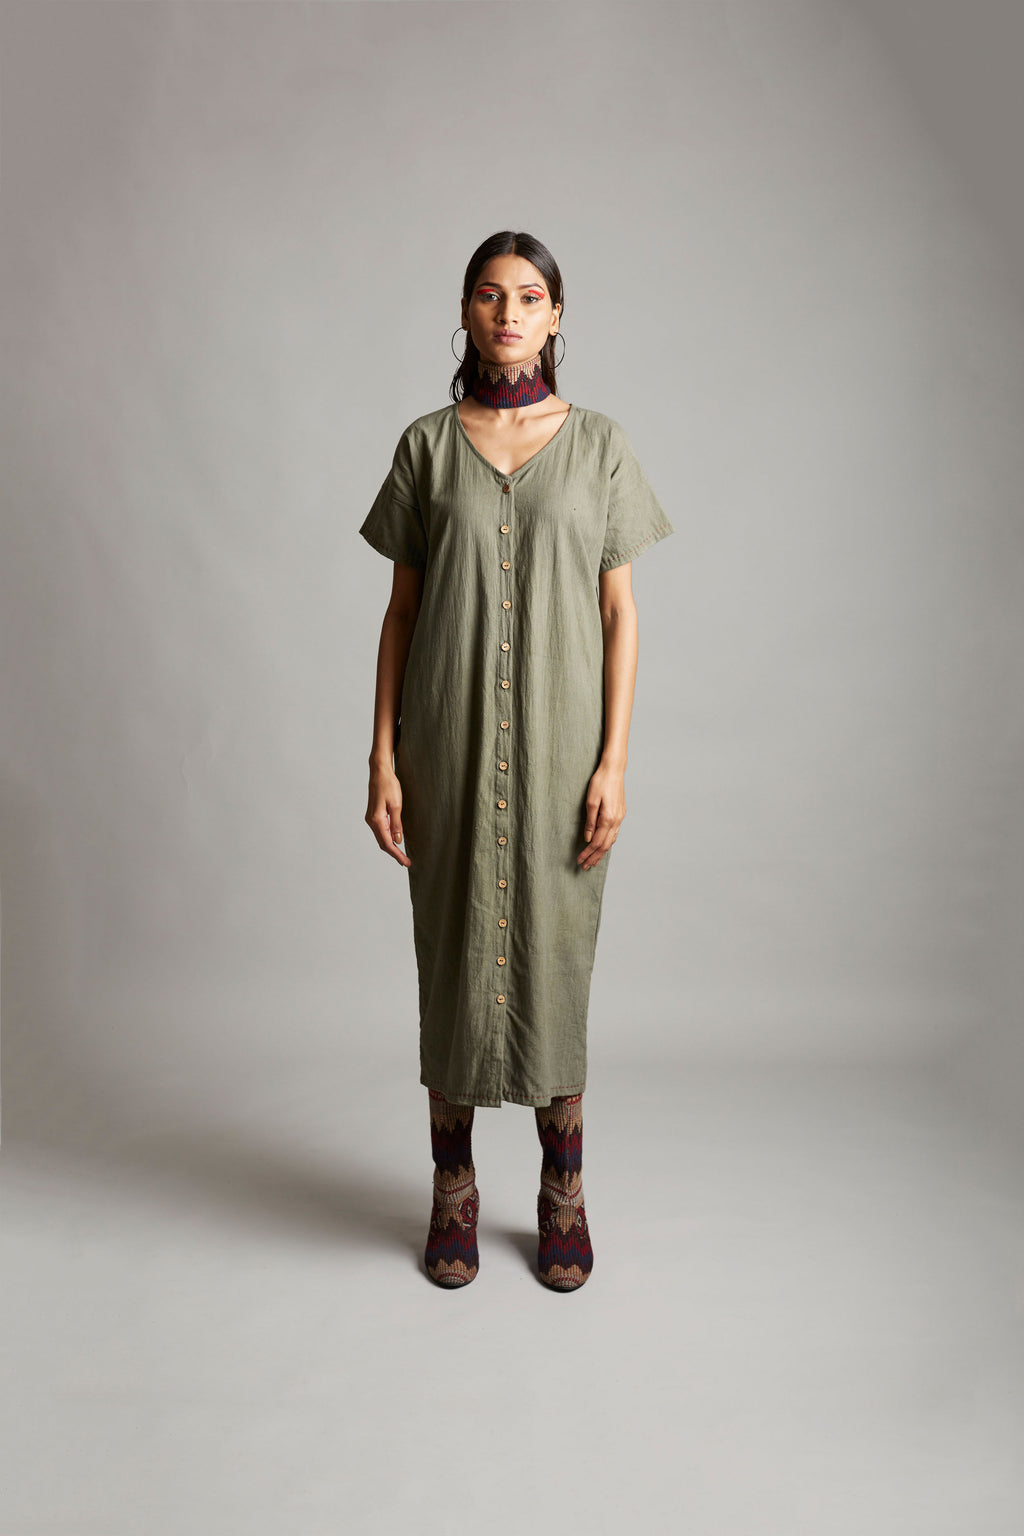 Efficacious Afterglow Half Sleeves Dress